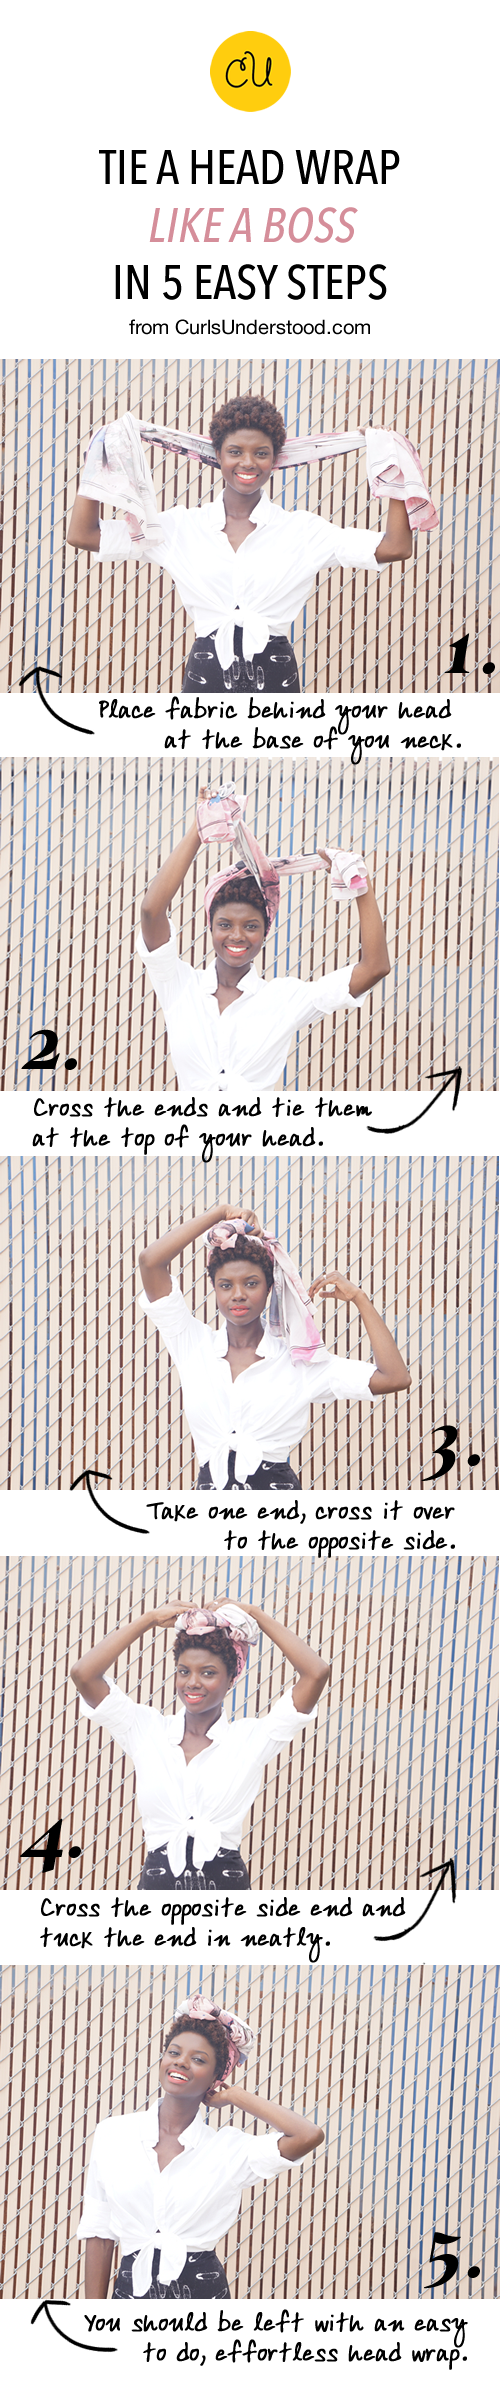 Tie a head wrap like a boss in 5 easy steps curls understood how to tie a headwrap ccuart Image collections